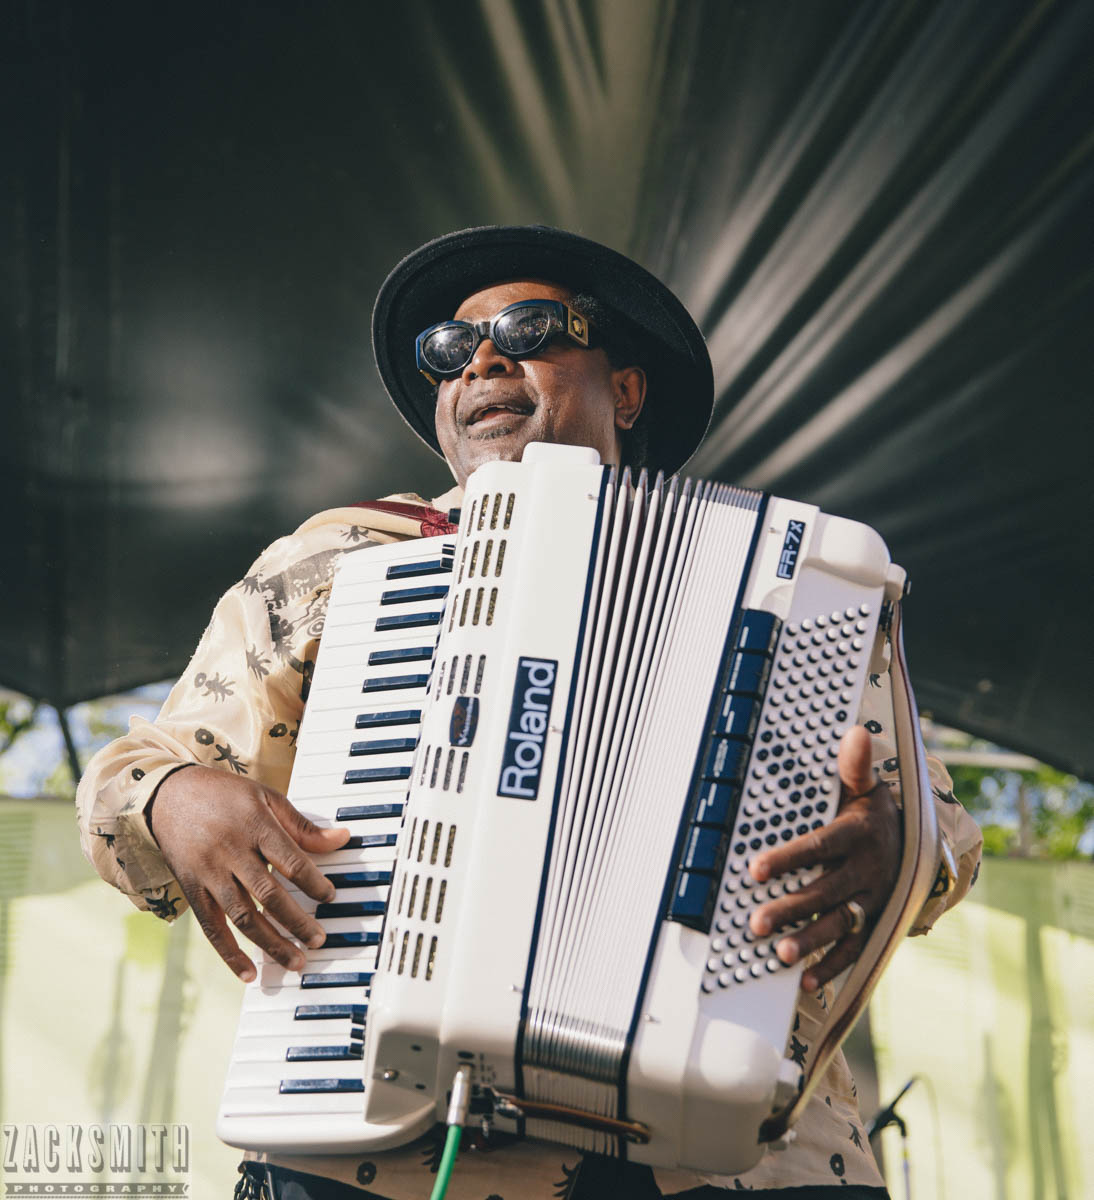 Nathan Williams and the Zydeco Cha Cha